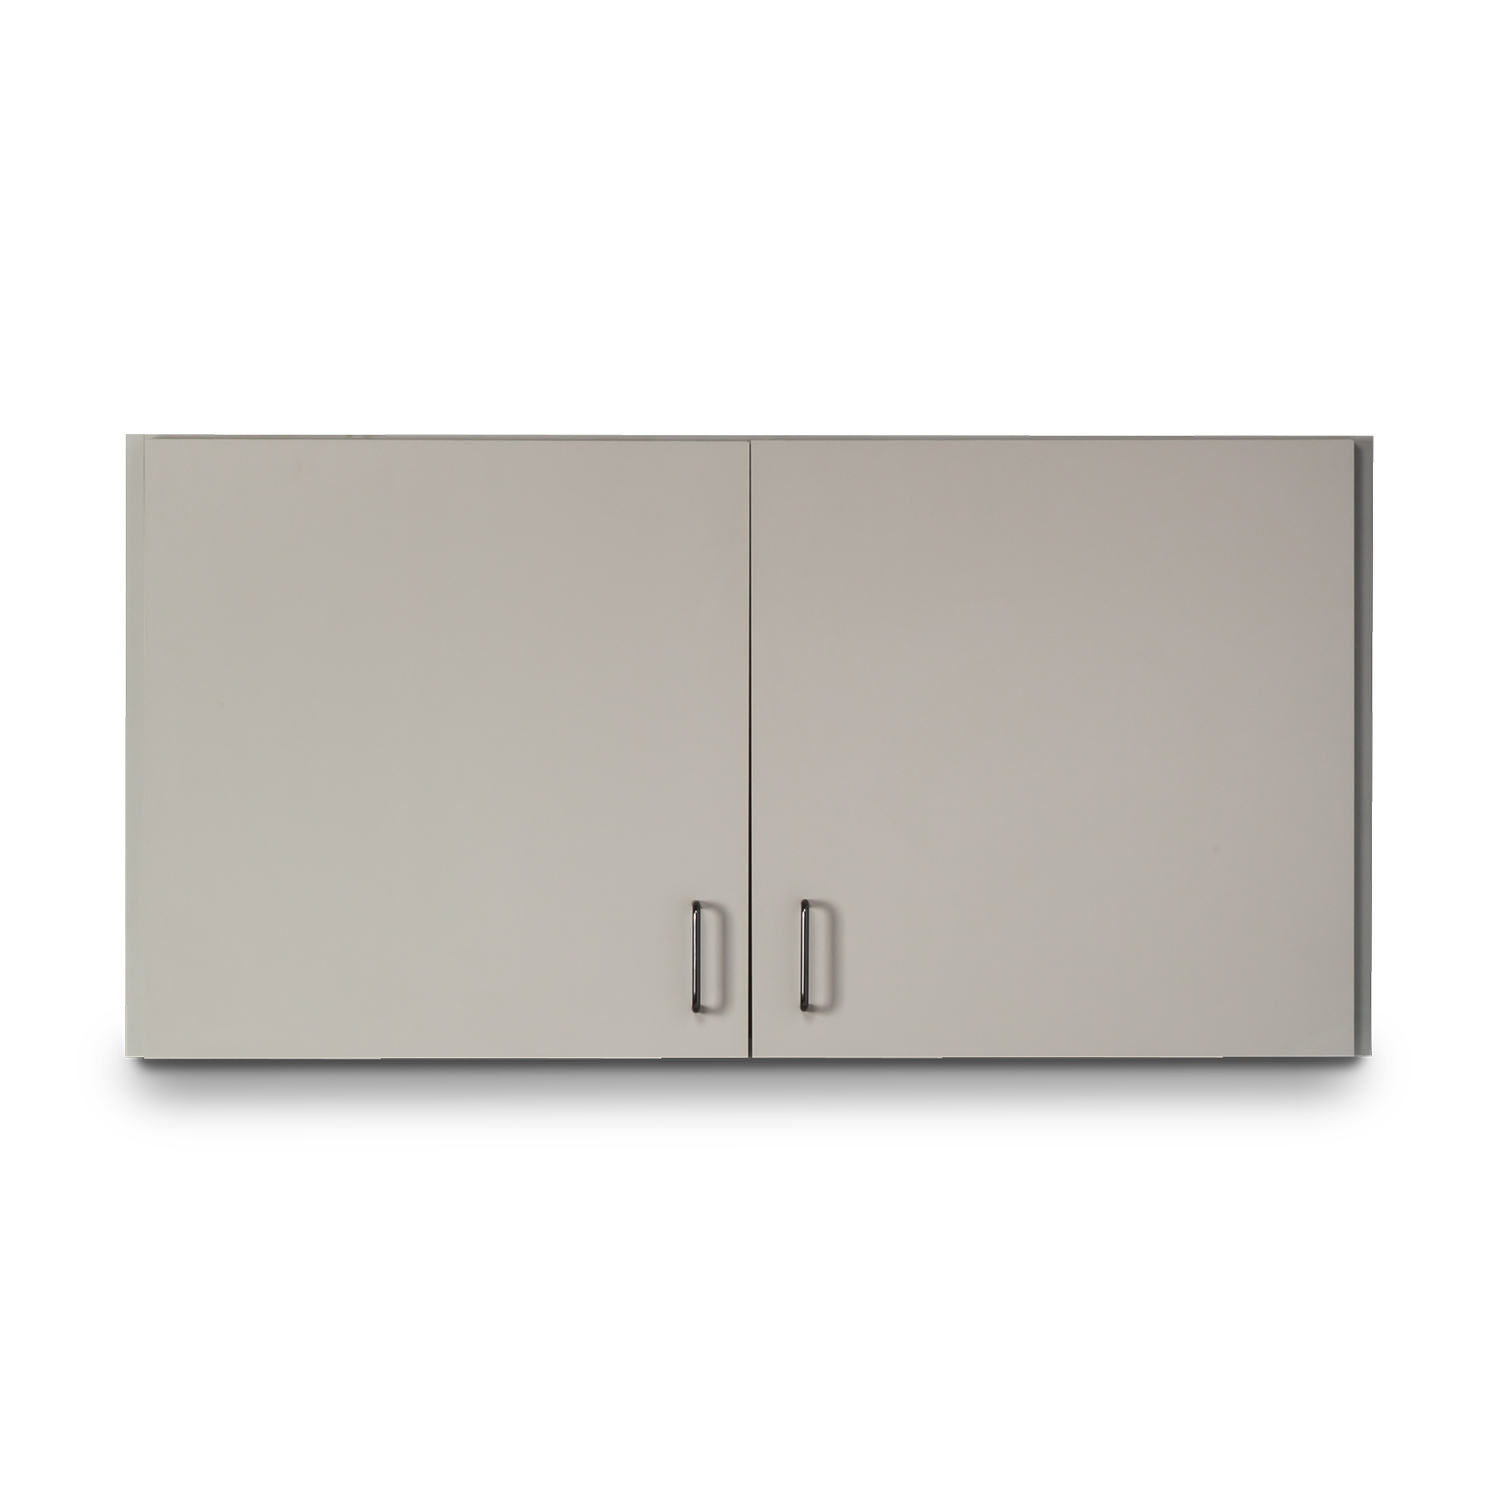 Clinton Wall Cabinet with 2 Doors - 42 in